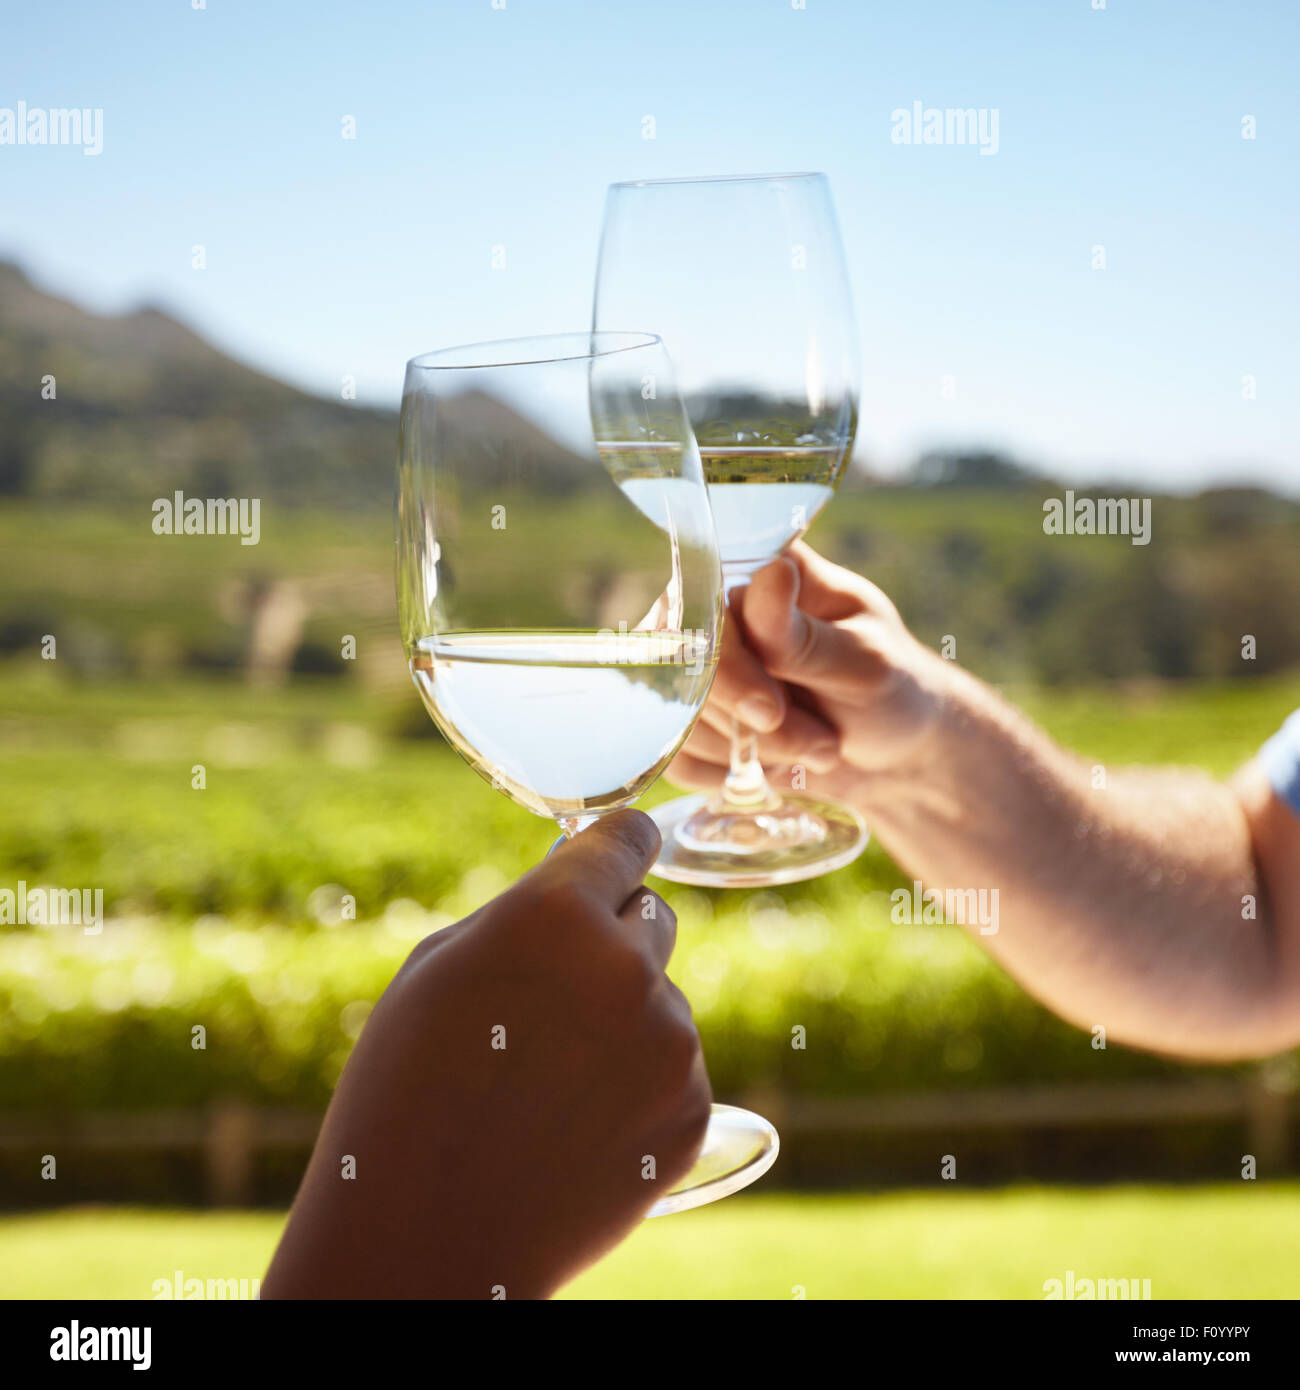 Close up of hands toasting wine outdoors. Celebrating with white wine with vineyard in background. - Stock Image